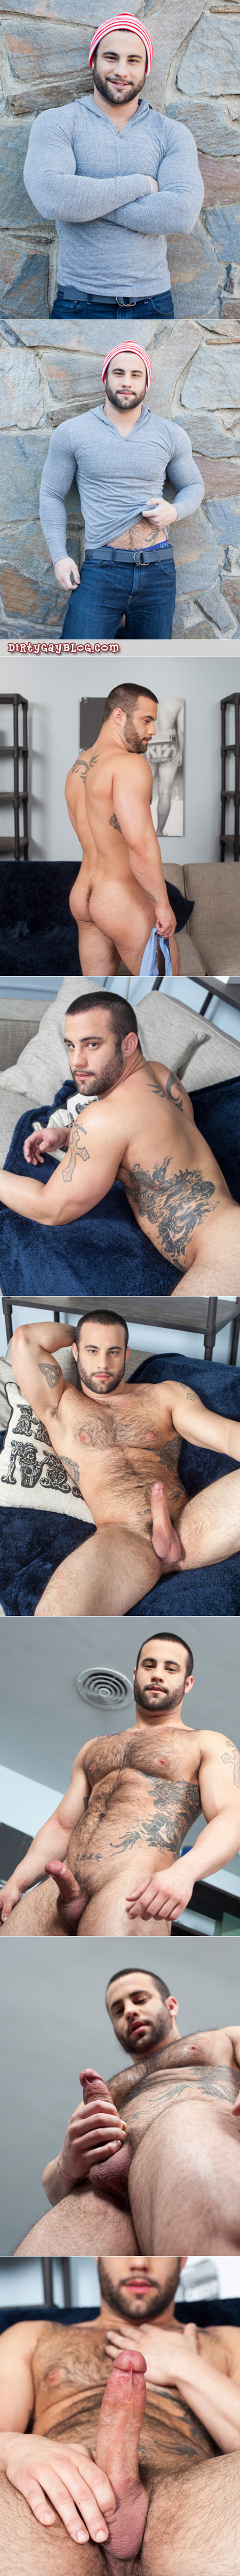 Hairy bodybuilder with lots of tattoos jacking off.